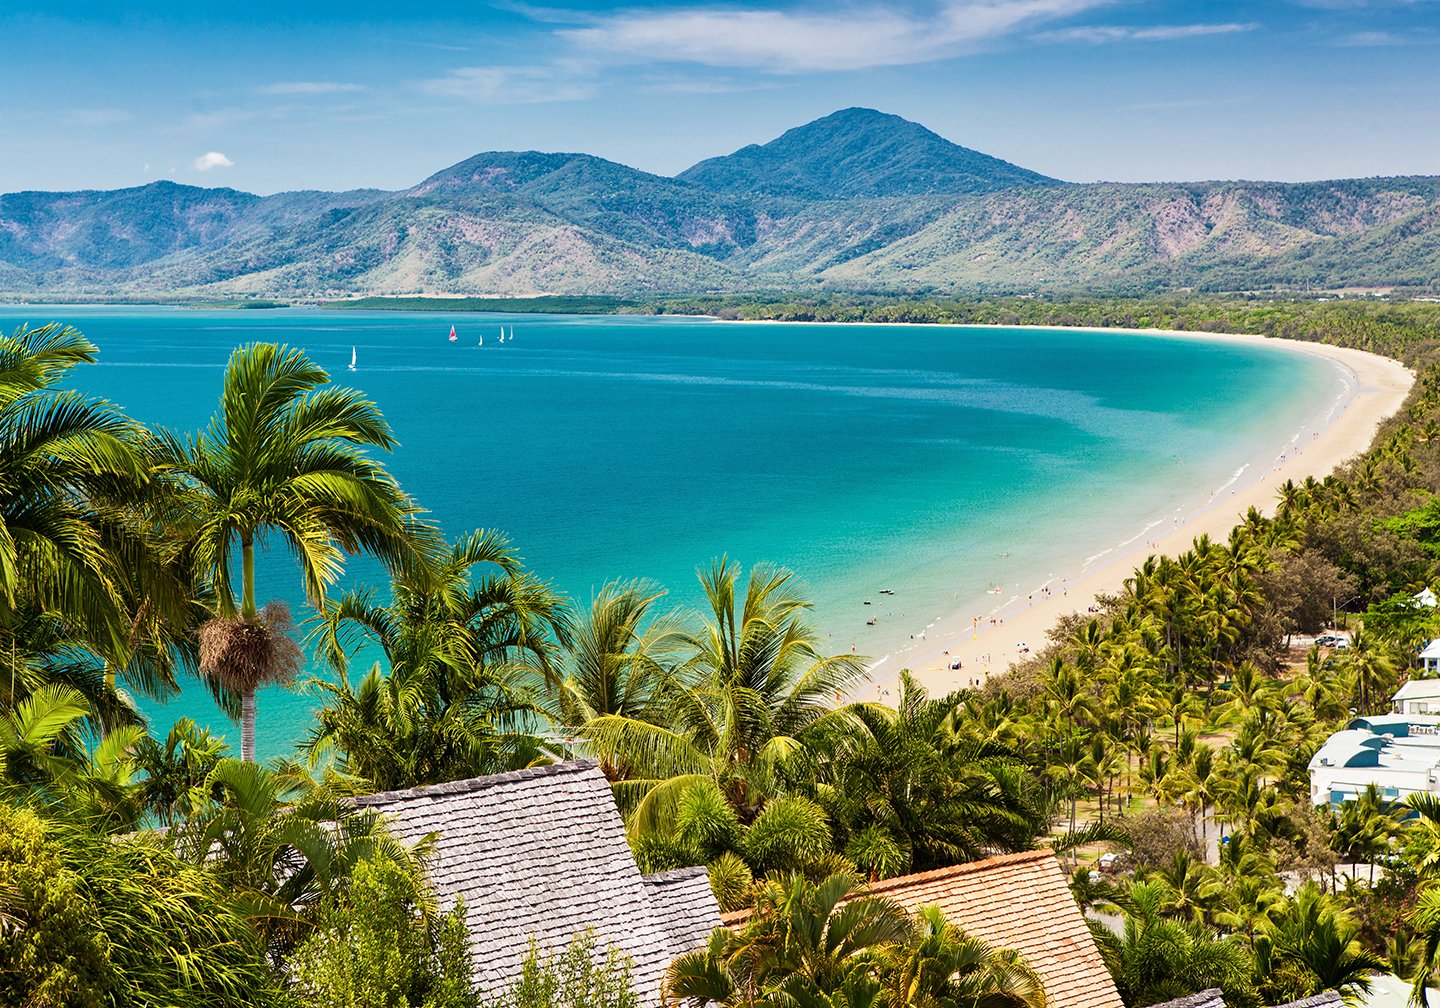 A view of the bay in Cairns, Australia, with green trees, yellow sand, and turquoise water.